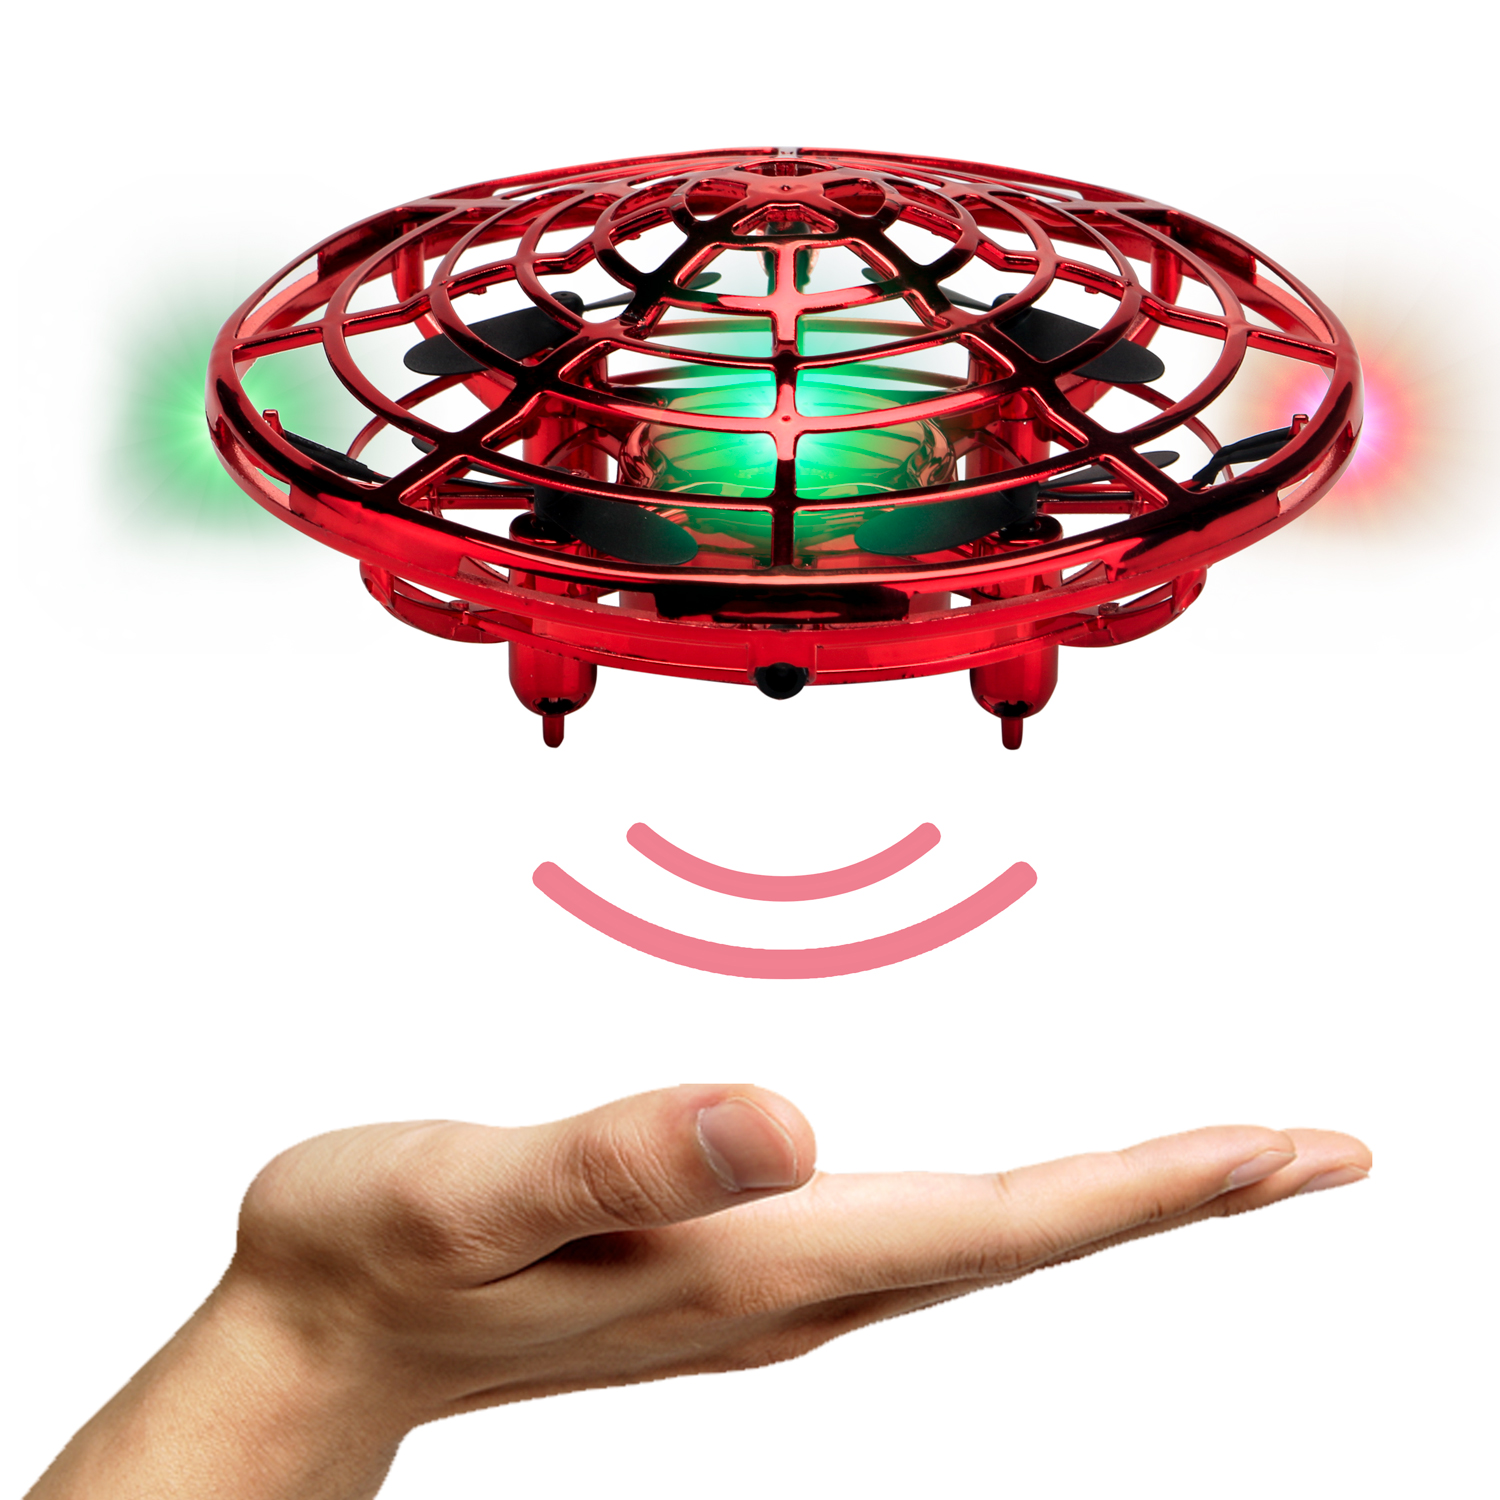 Mini Drones Interactive UFO Flying Ball Toys for Kids and Adults Infrared Sensing Gesture Control RC Drone Helicopter with LED-in RC Helicopters from Toys & Hobbies